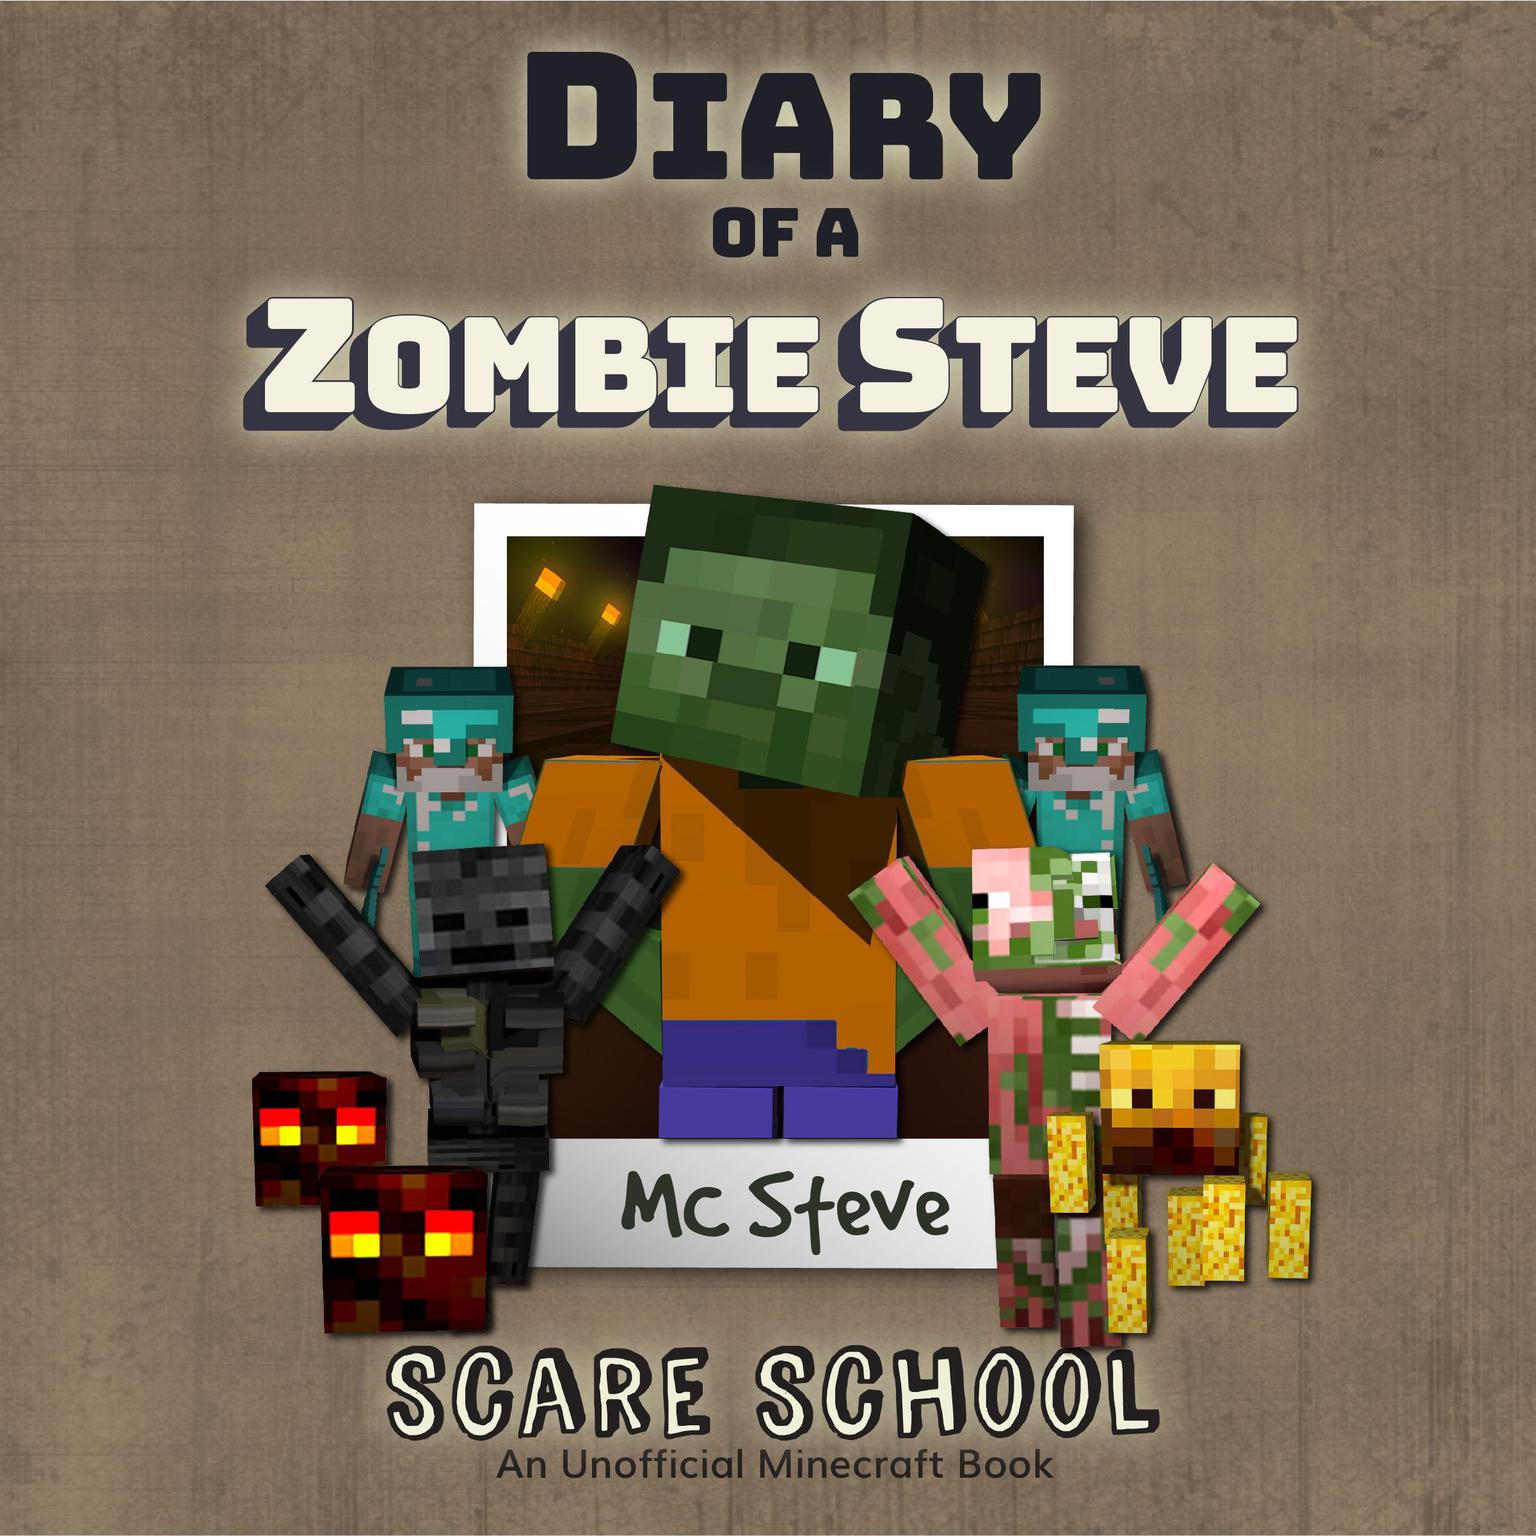 Diary of a Minecraft Zombie Steve Book 5: Scare School (An Unofficial Minecraft Diary Book): An Unofficial Minecraft Diary Book Audiobook, by MC Steve